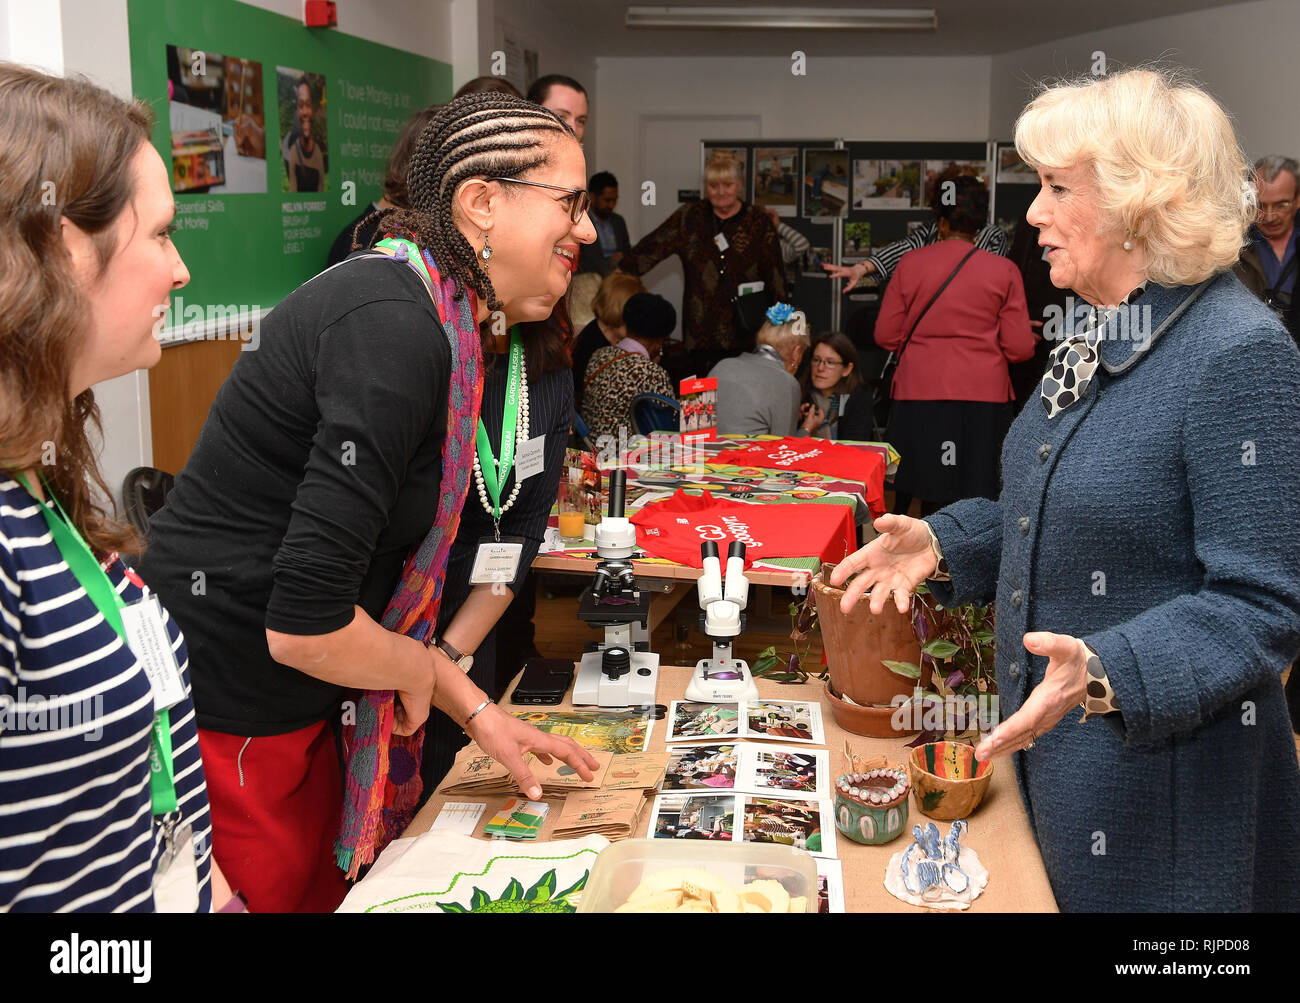 The Duchess of Cornwall meets the people who grow garden produce at the Lambeth GP food Co-op, at the Stockwell community centre during a reception for their 6th anniversary in Stockwell, south London. Stock Photo